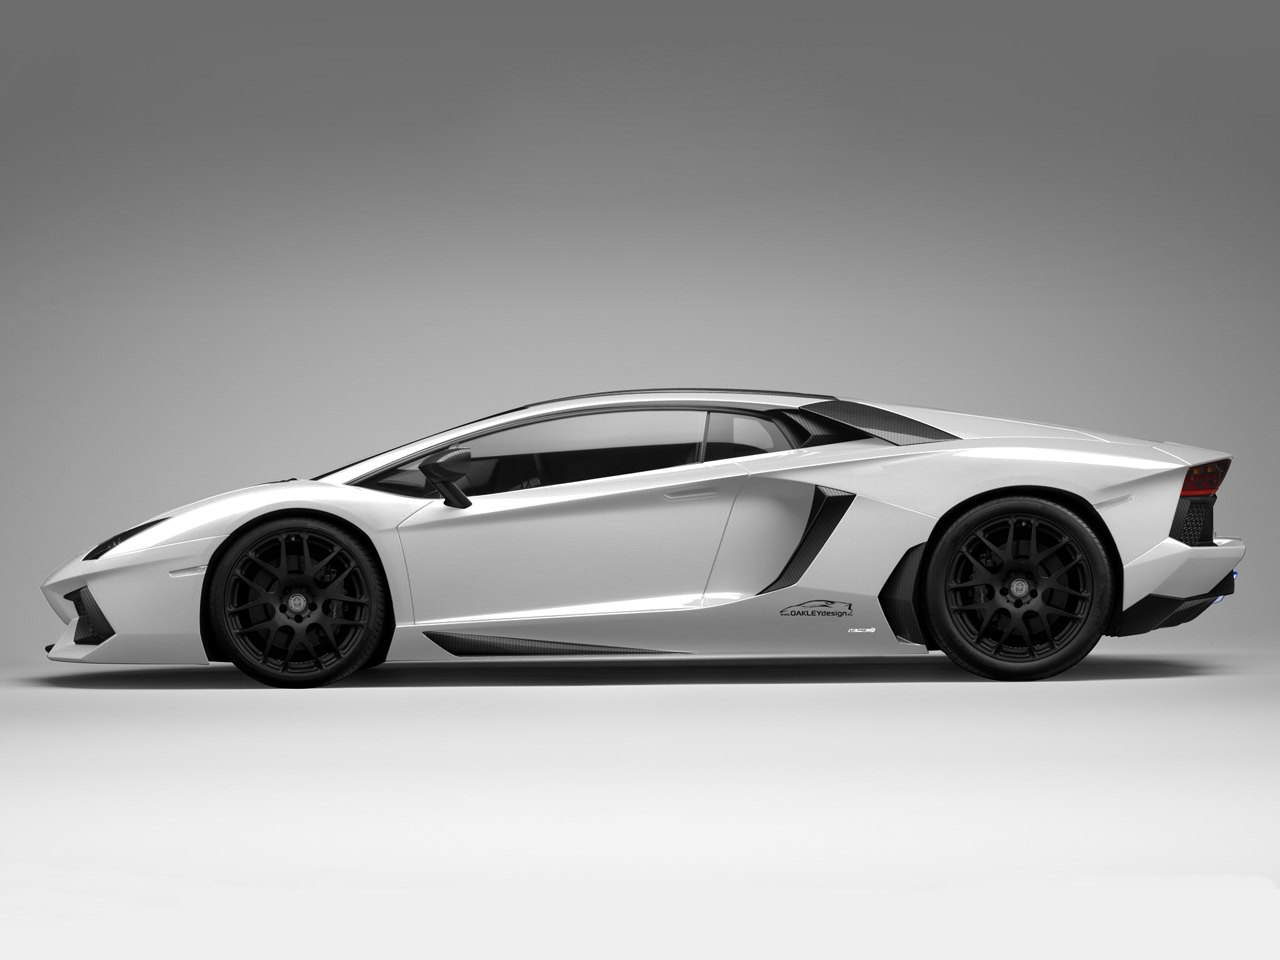 Oakley Design Tunes Lamborghini Aventador, Calls it LP760-2